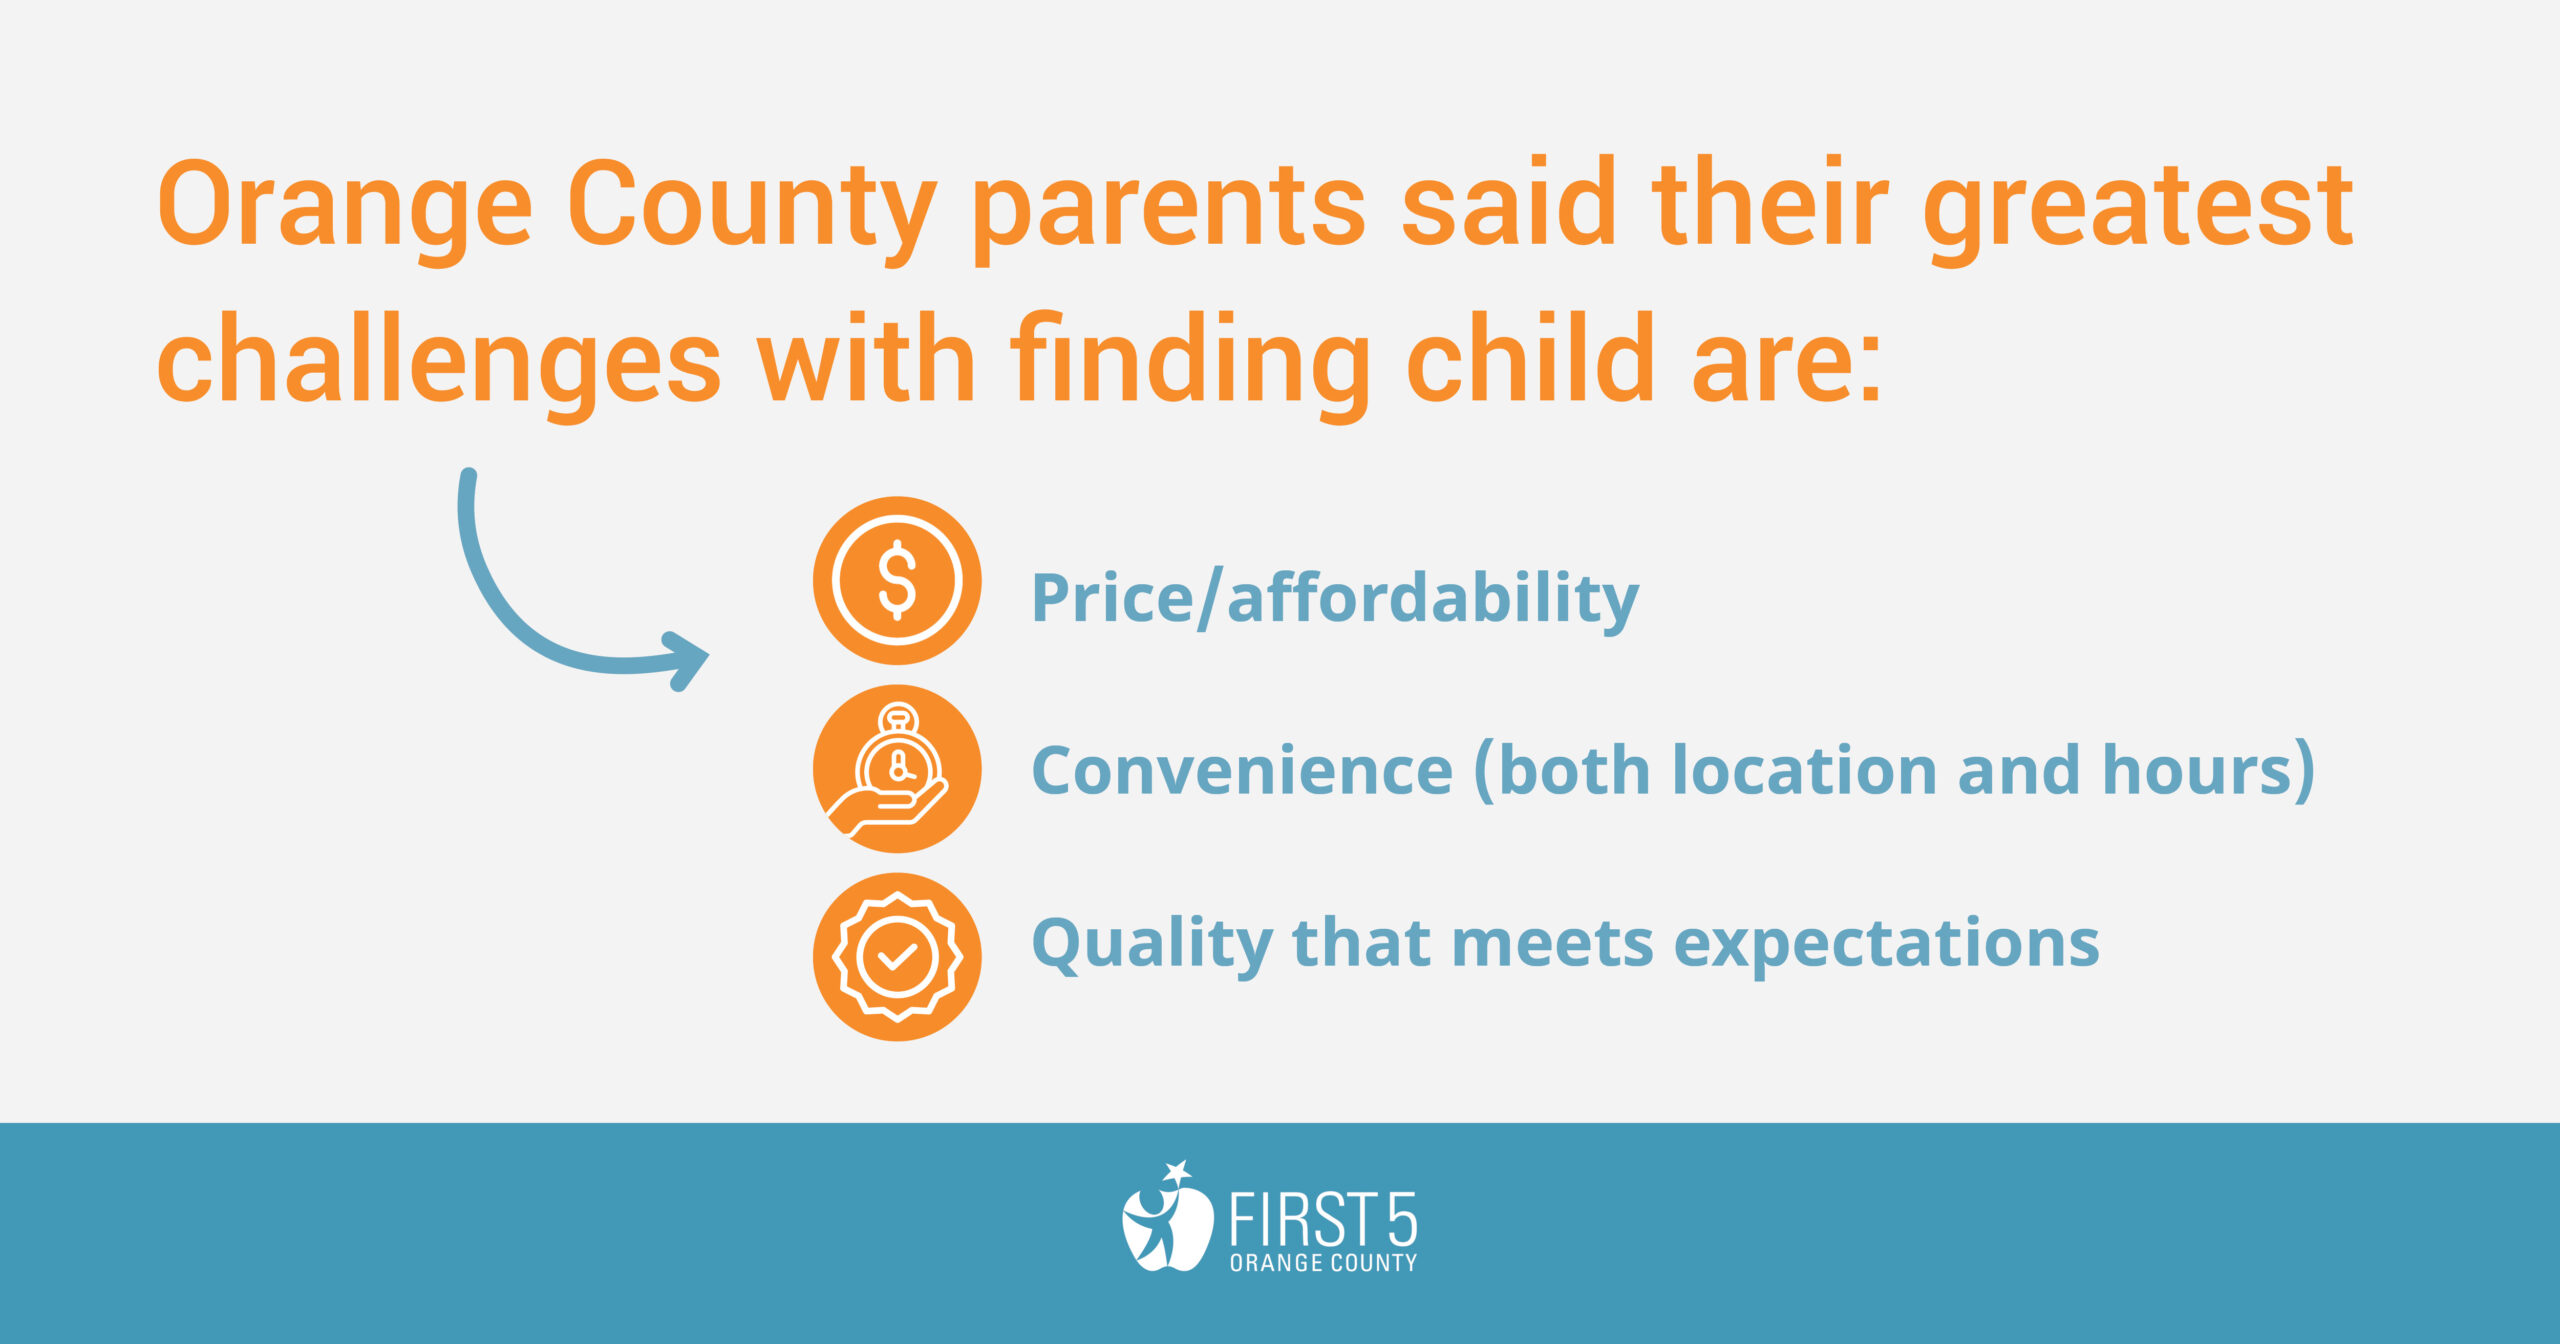 Even if only 1/3 of infants and toddlers in Orange County required child care, there would still only be enough licensed capacity for 1 in 7 children